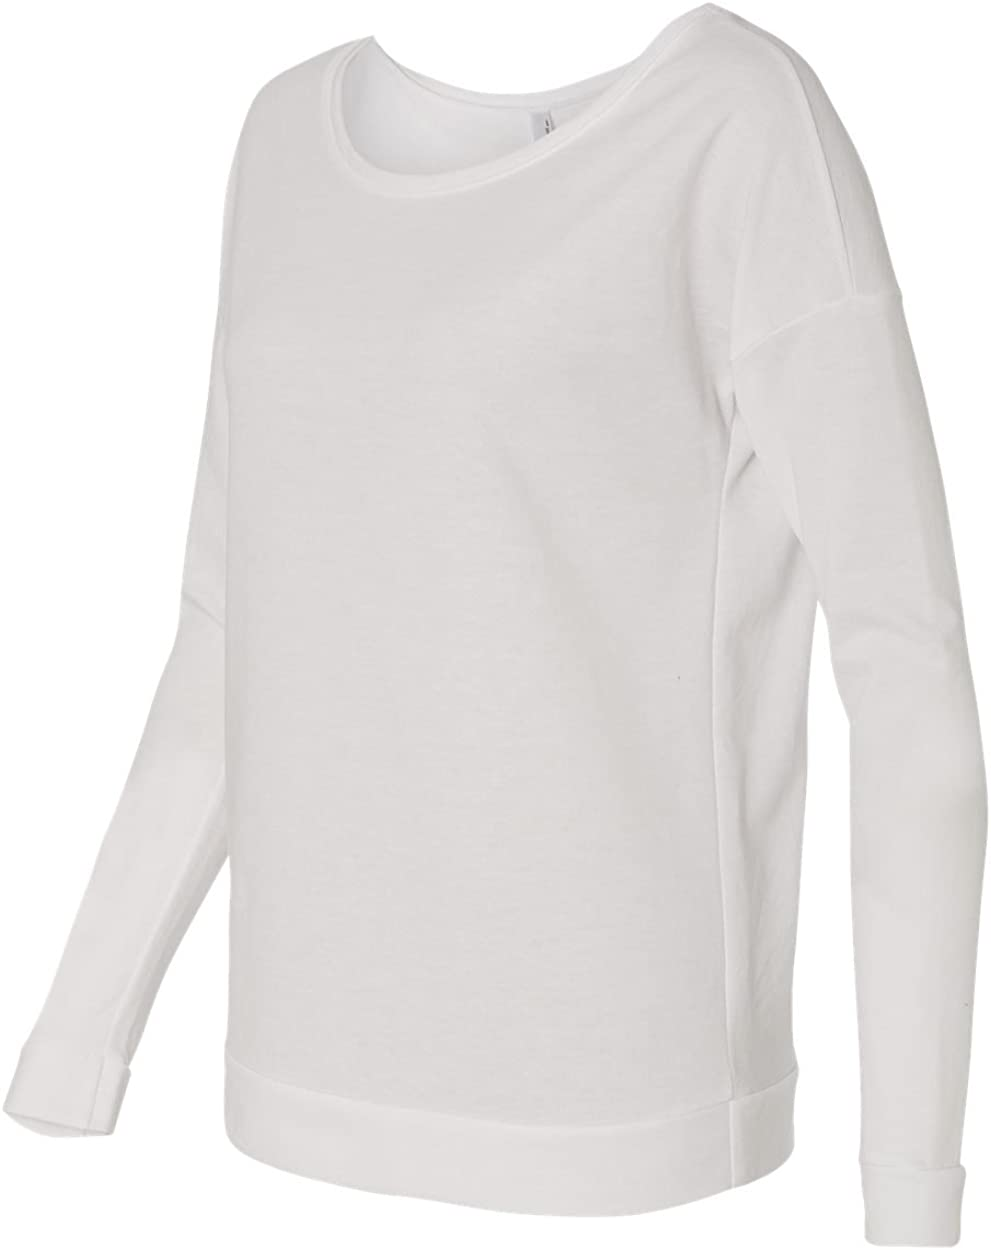 Next Level The Terry Long-Sleeve Scoop